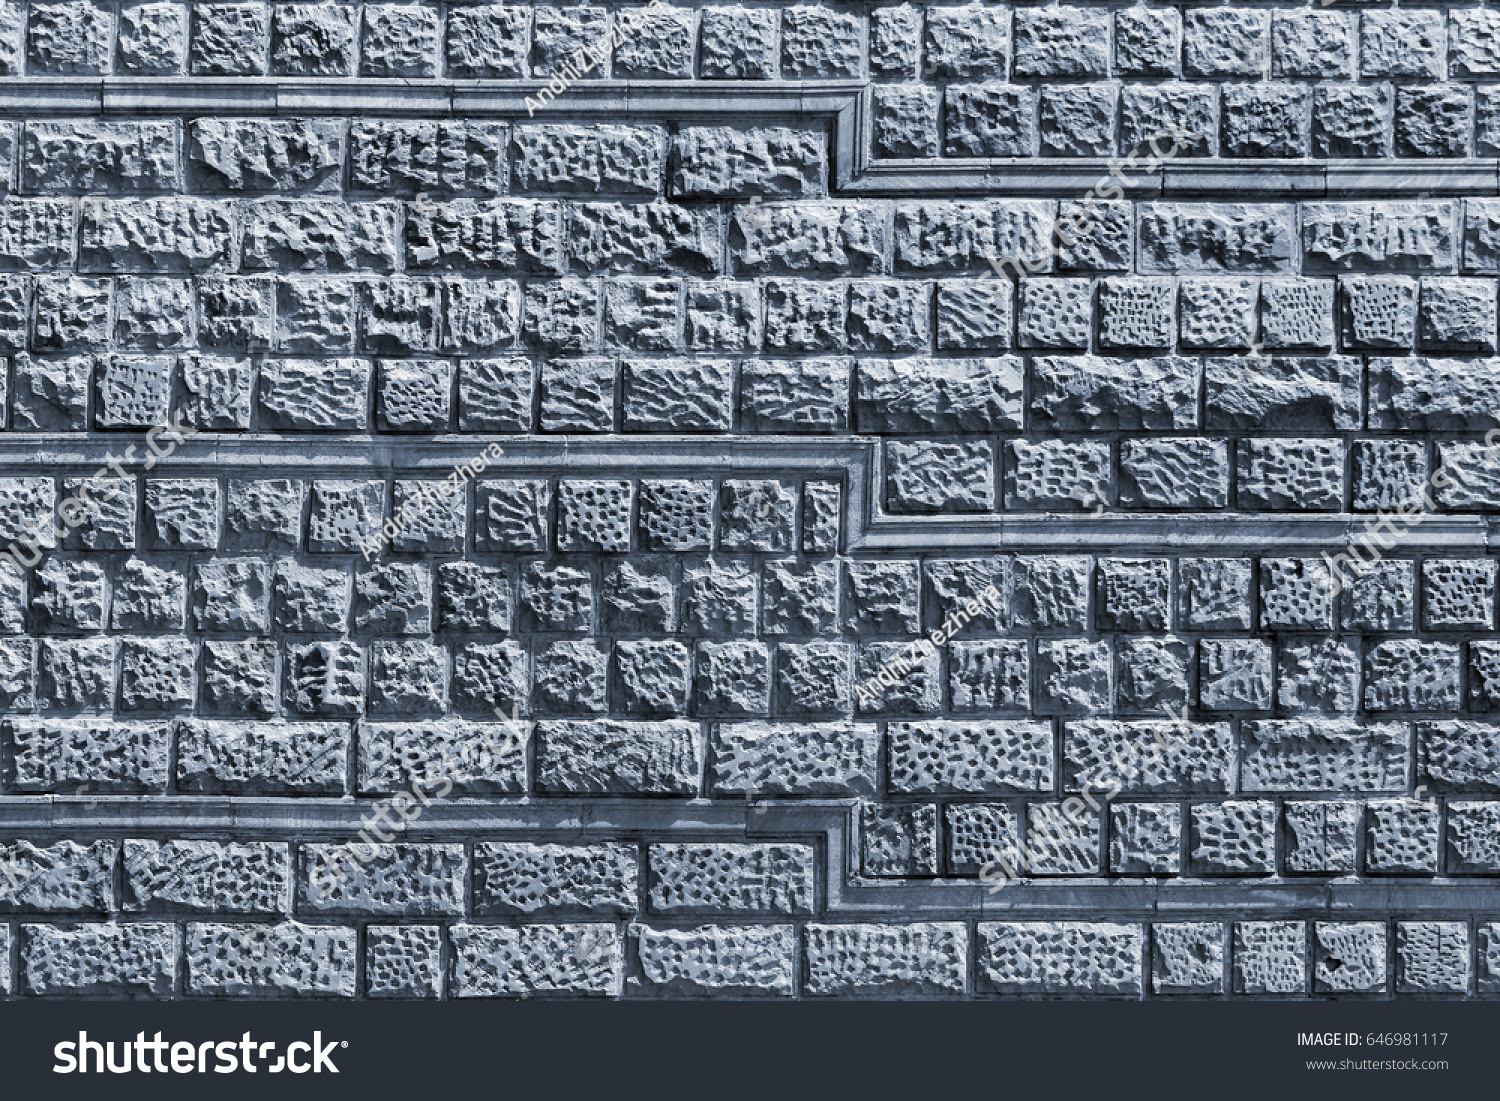 Decorative Stone Tiles Wall Rough Dimpled Stock Photo (Royalty Free ...